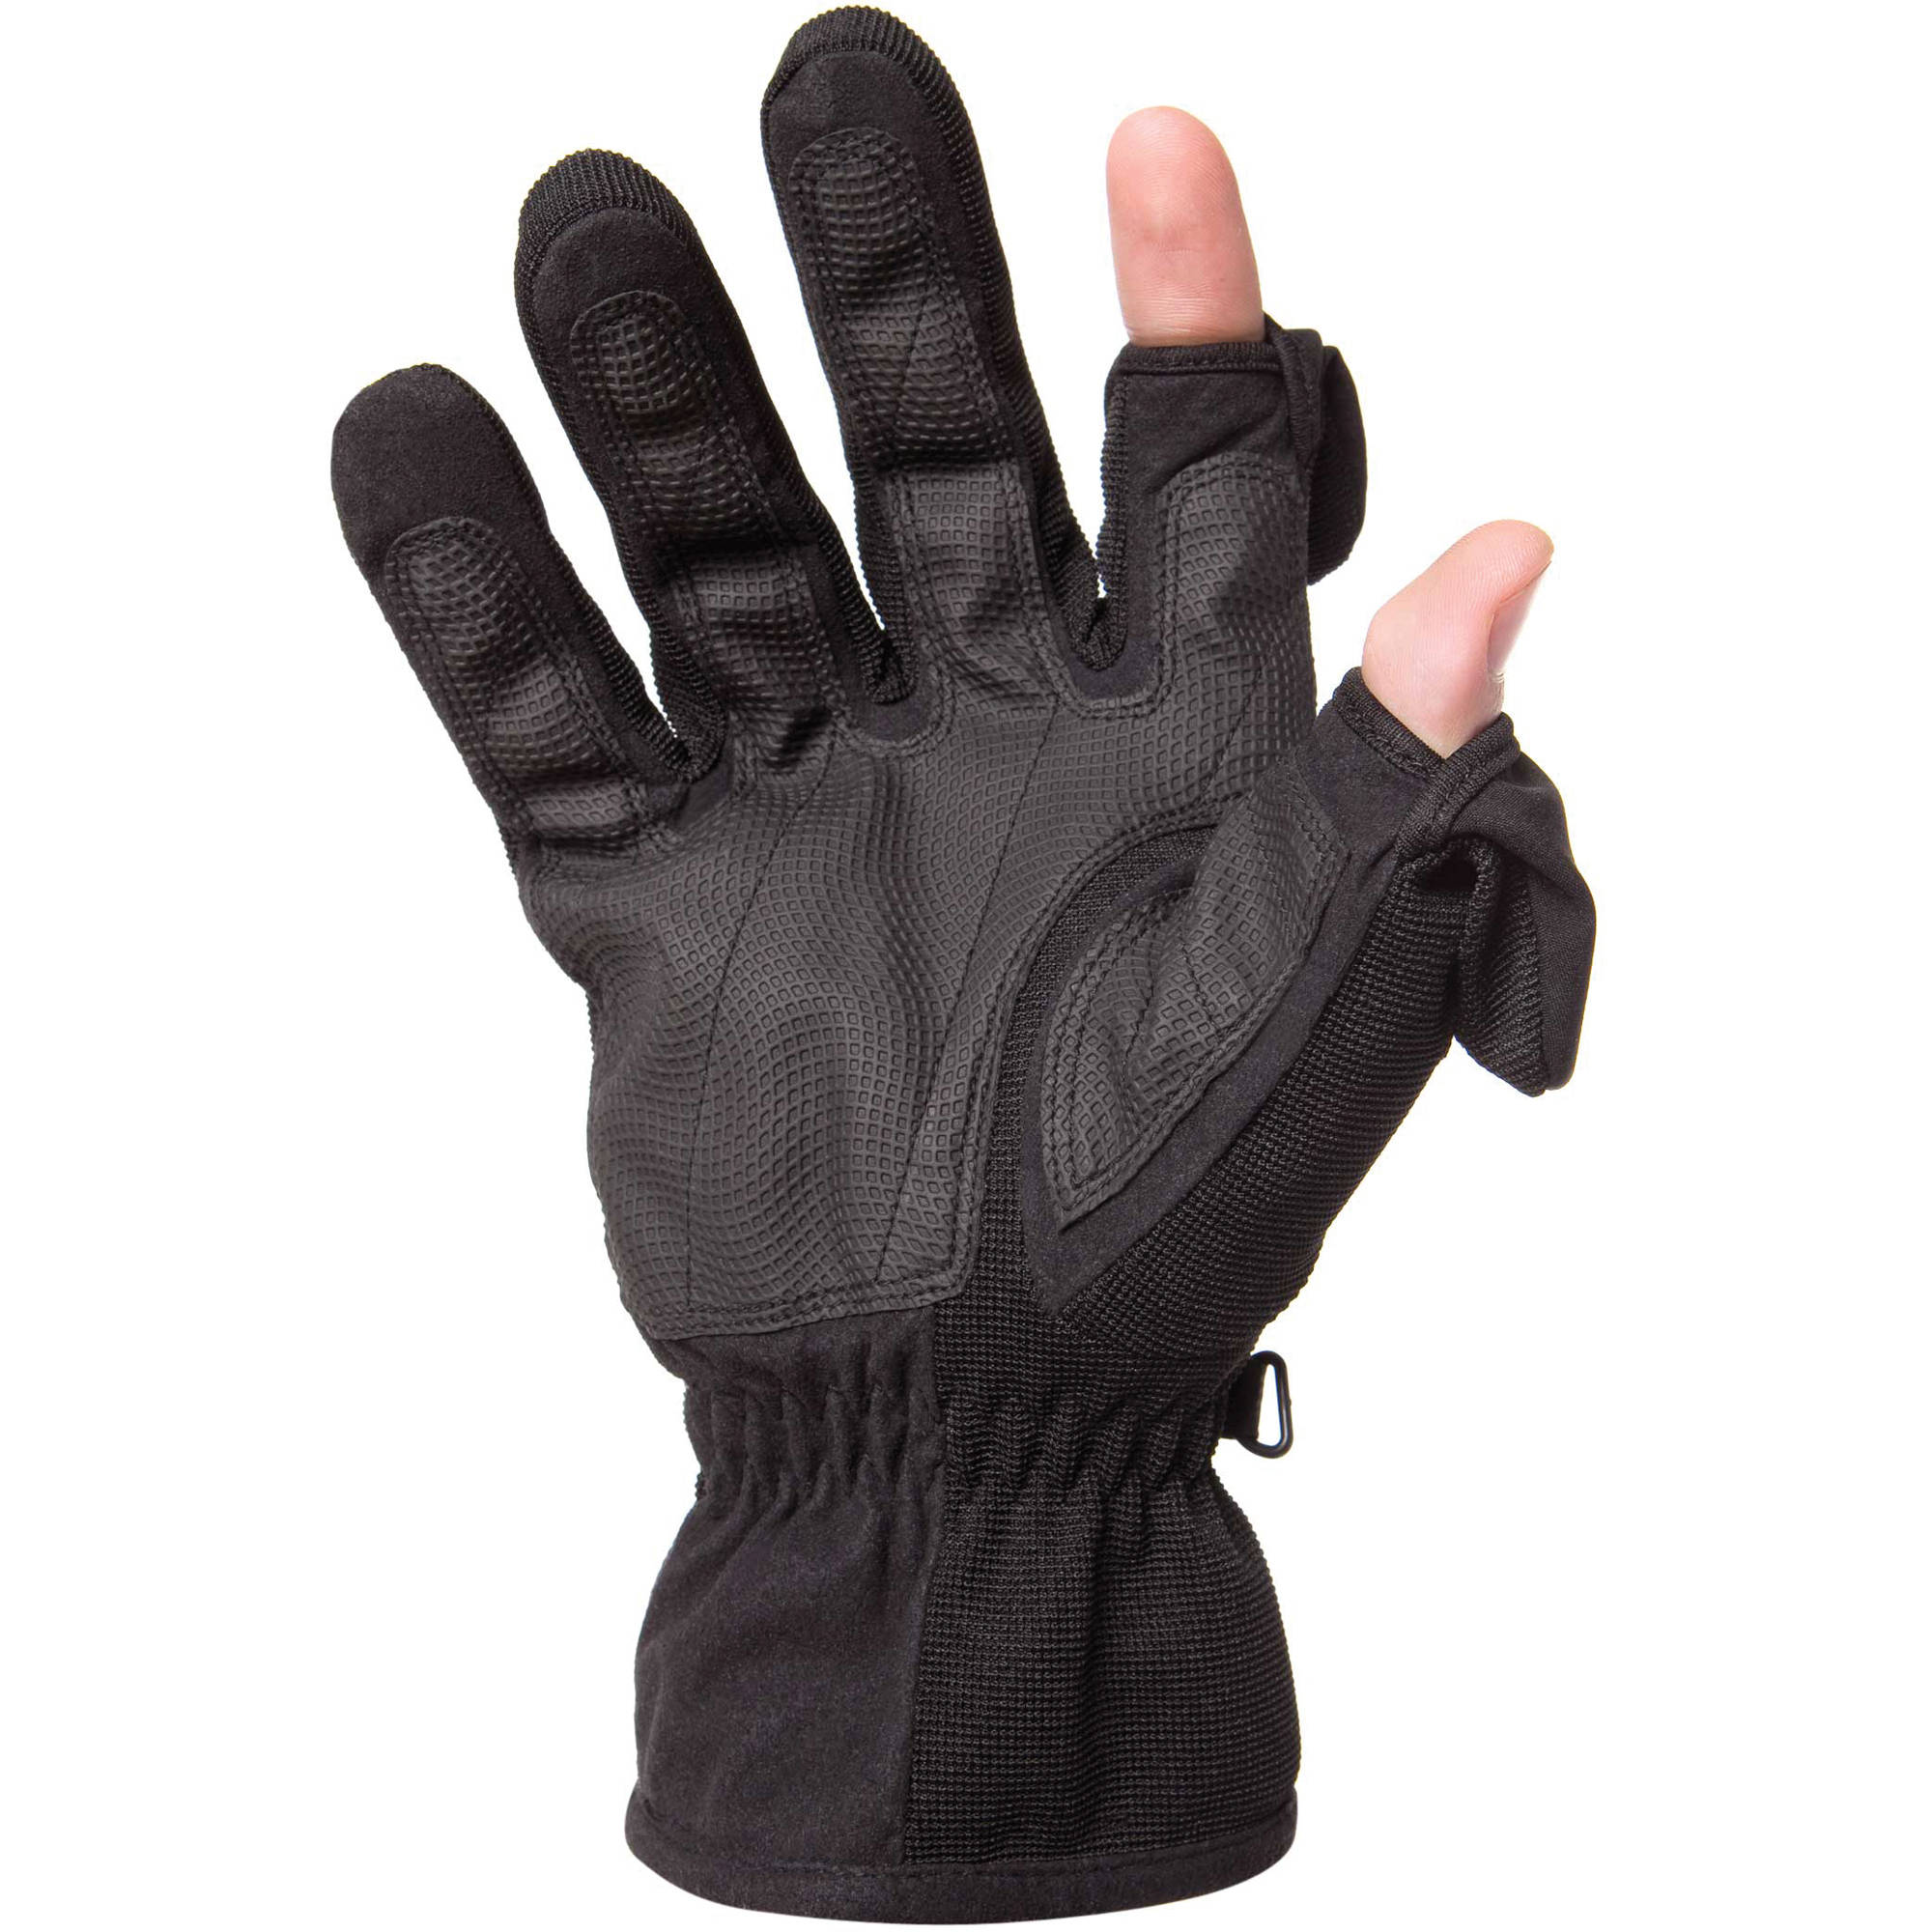 Mens gloves use iphone - Freehands Men S Stretch Thinsulate Gloves Large Black